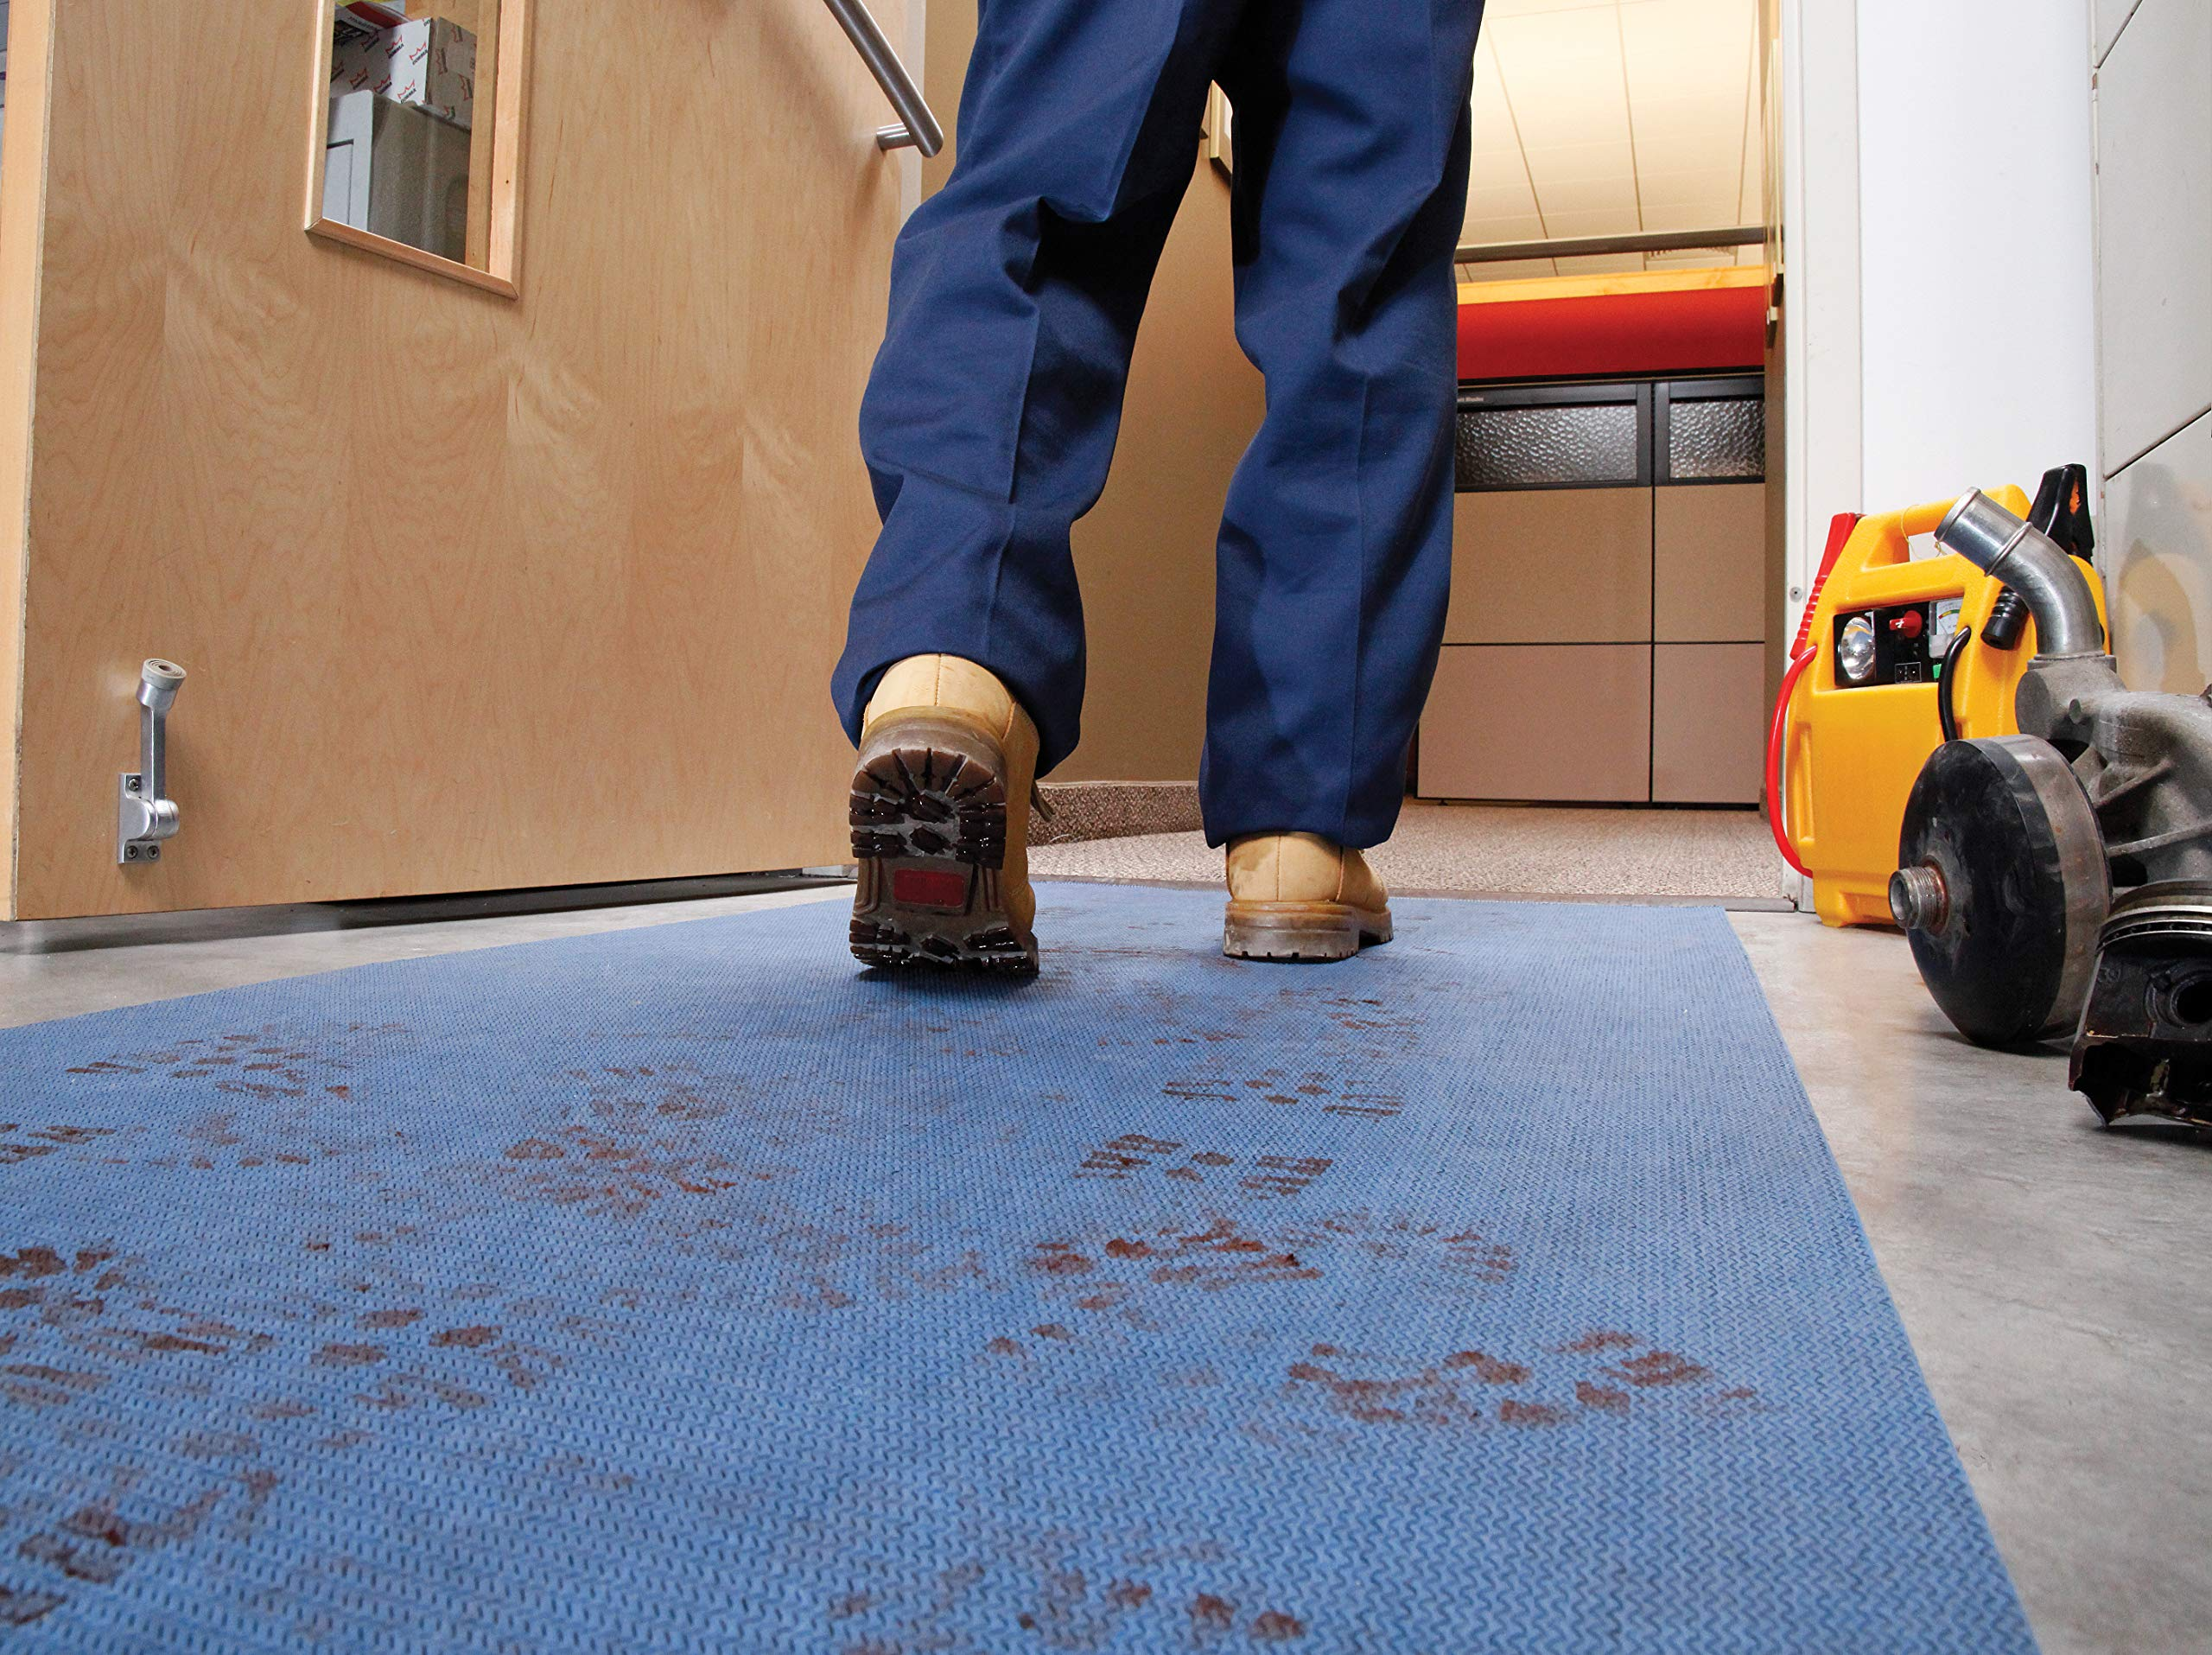 New Pig Protective Floor Mat for Contracting Projects - PM50240 by New Pig Corporation (Image #1)